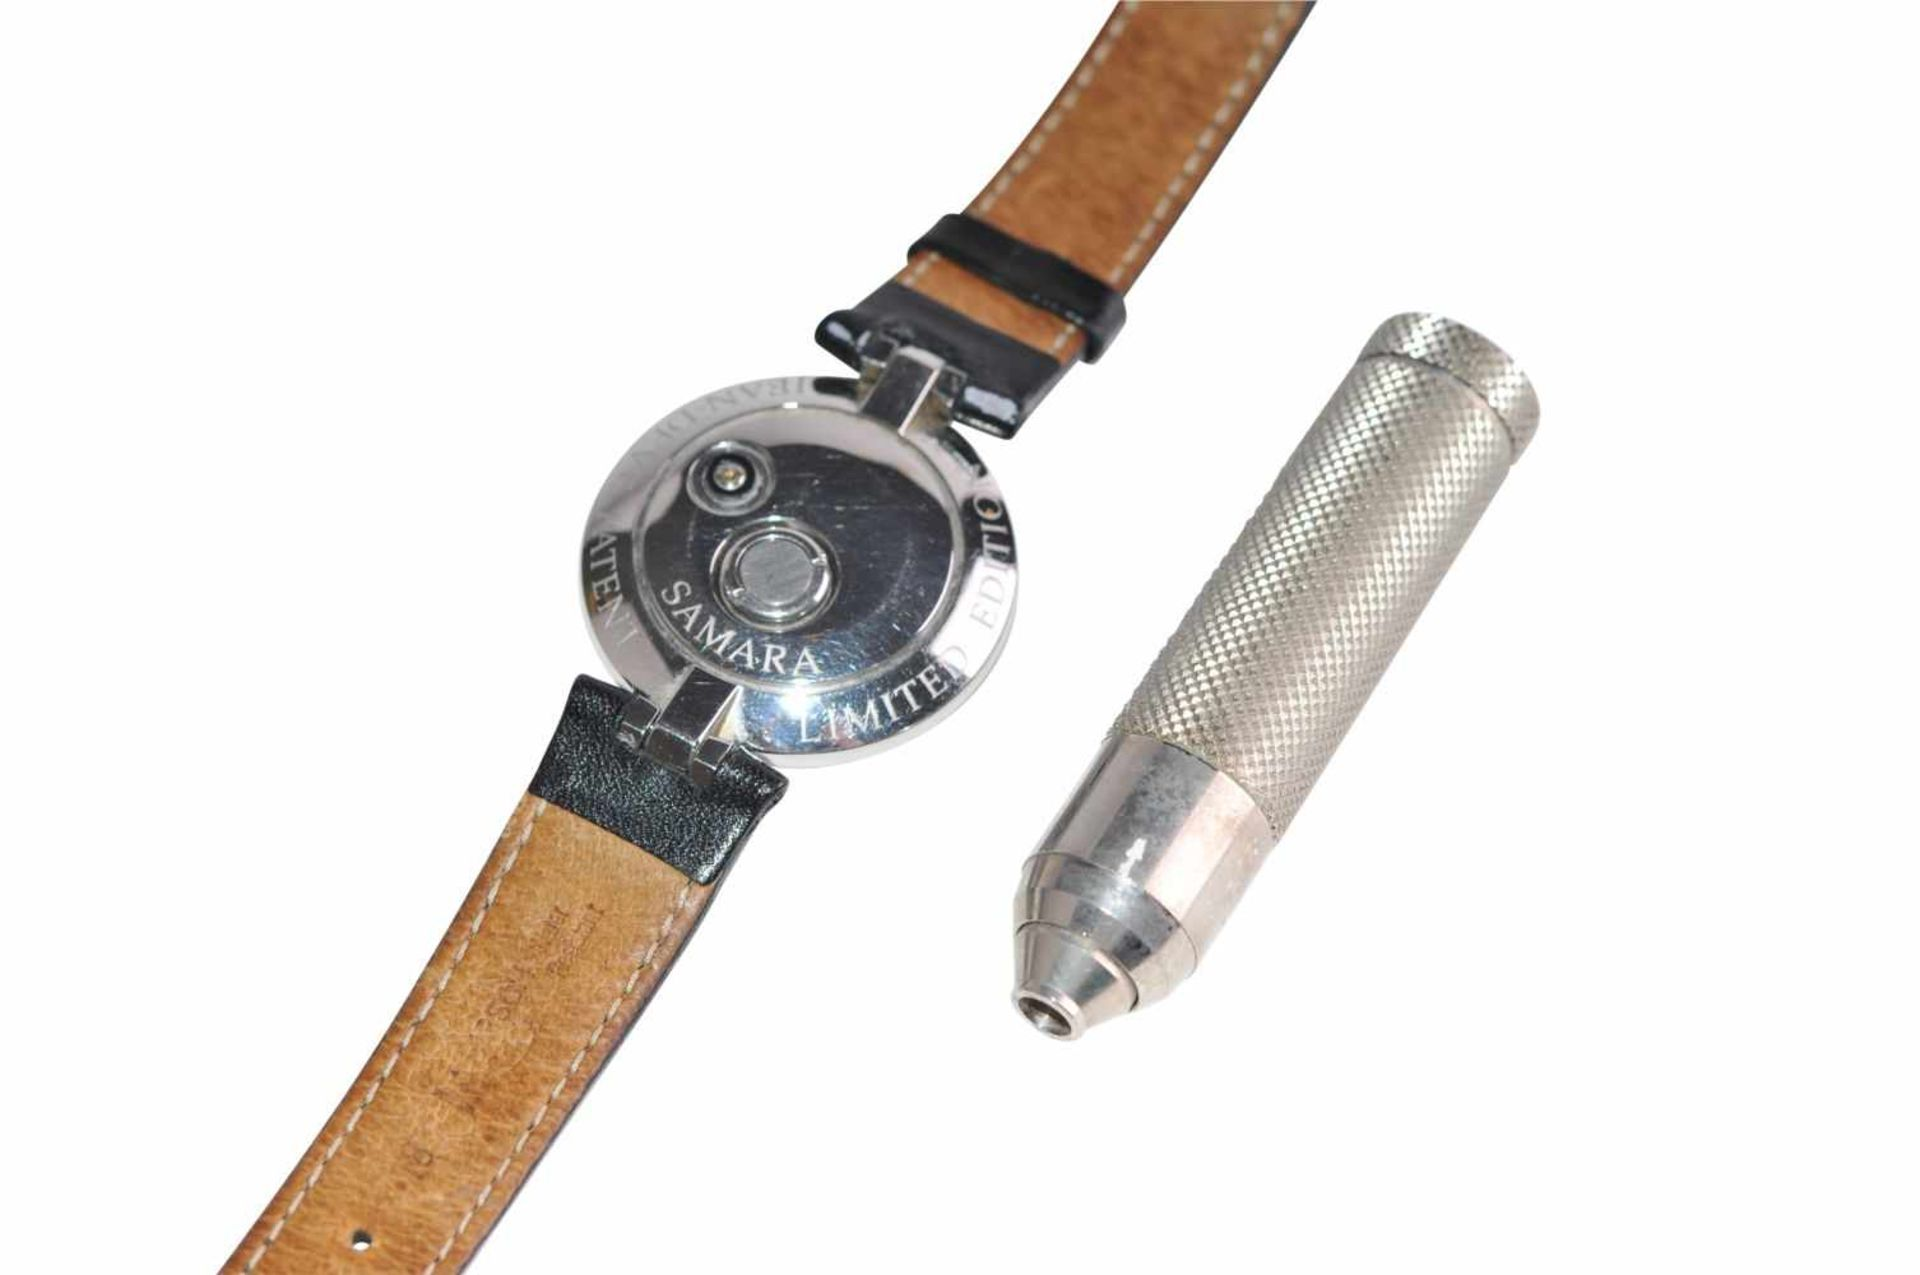 Los 39 - Jean d´Eve SamaraThe first automatic quartz watch built in 1988 by LePhare, Jean d'Eve, for the